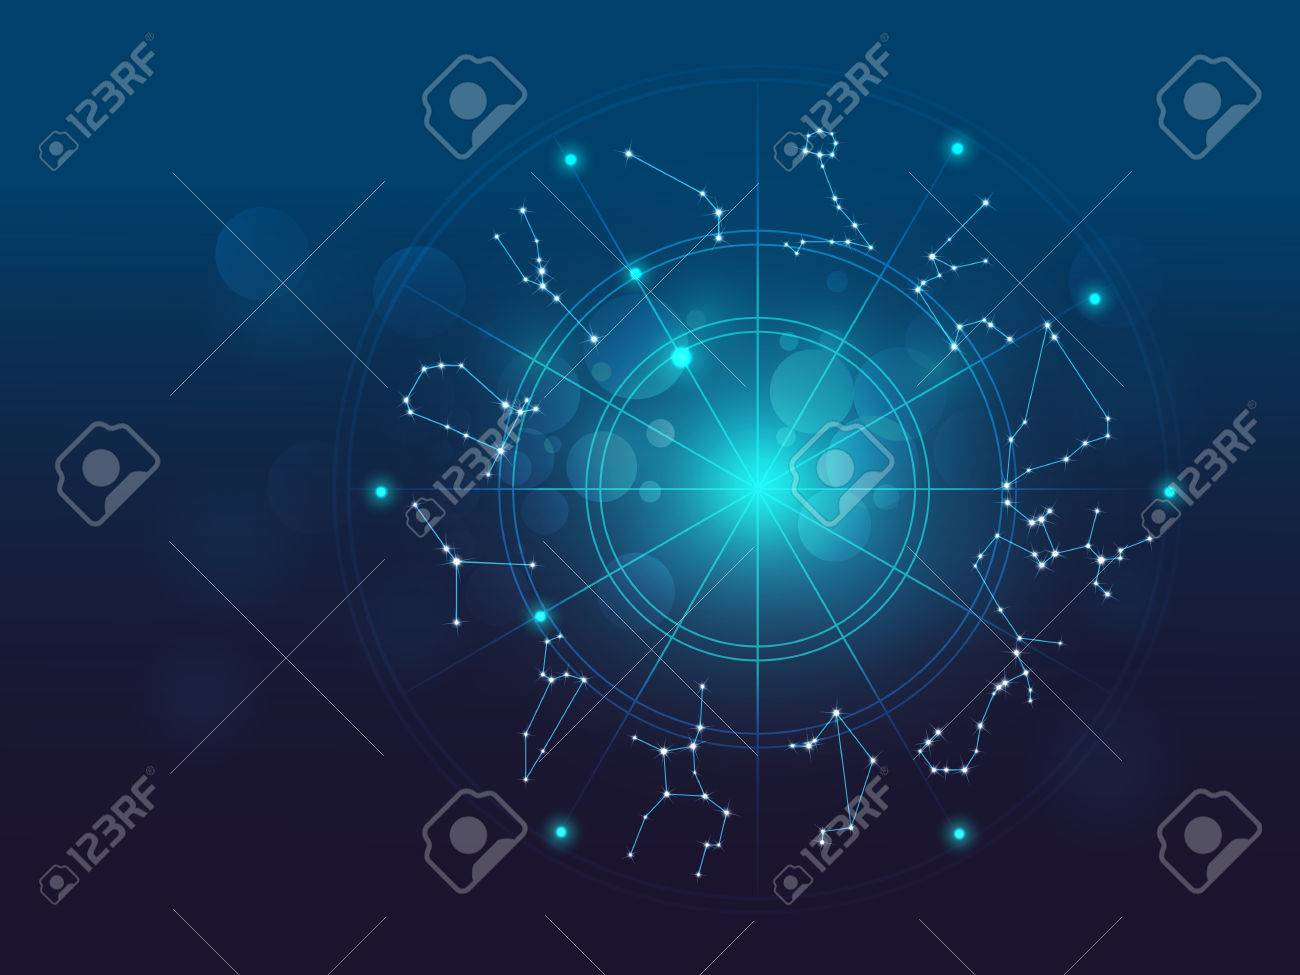 Backdrop design of sacred symbols signs geometry and designs backdrop design of sacred symbols signs geometry and designs to provide supporting element for biocorpaavc Choice Image